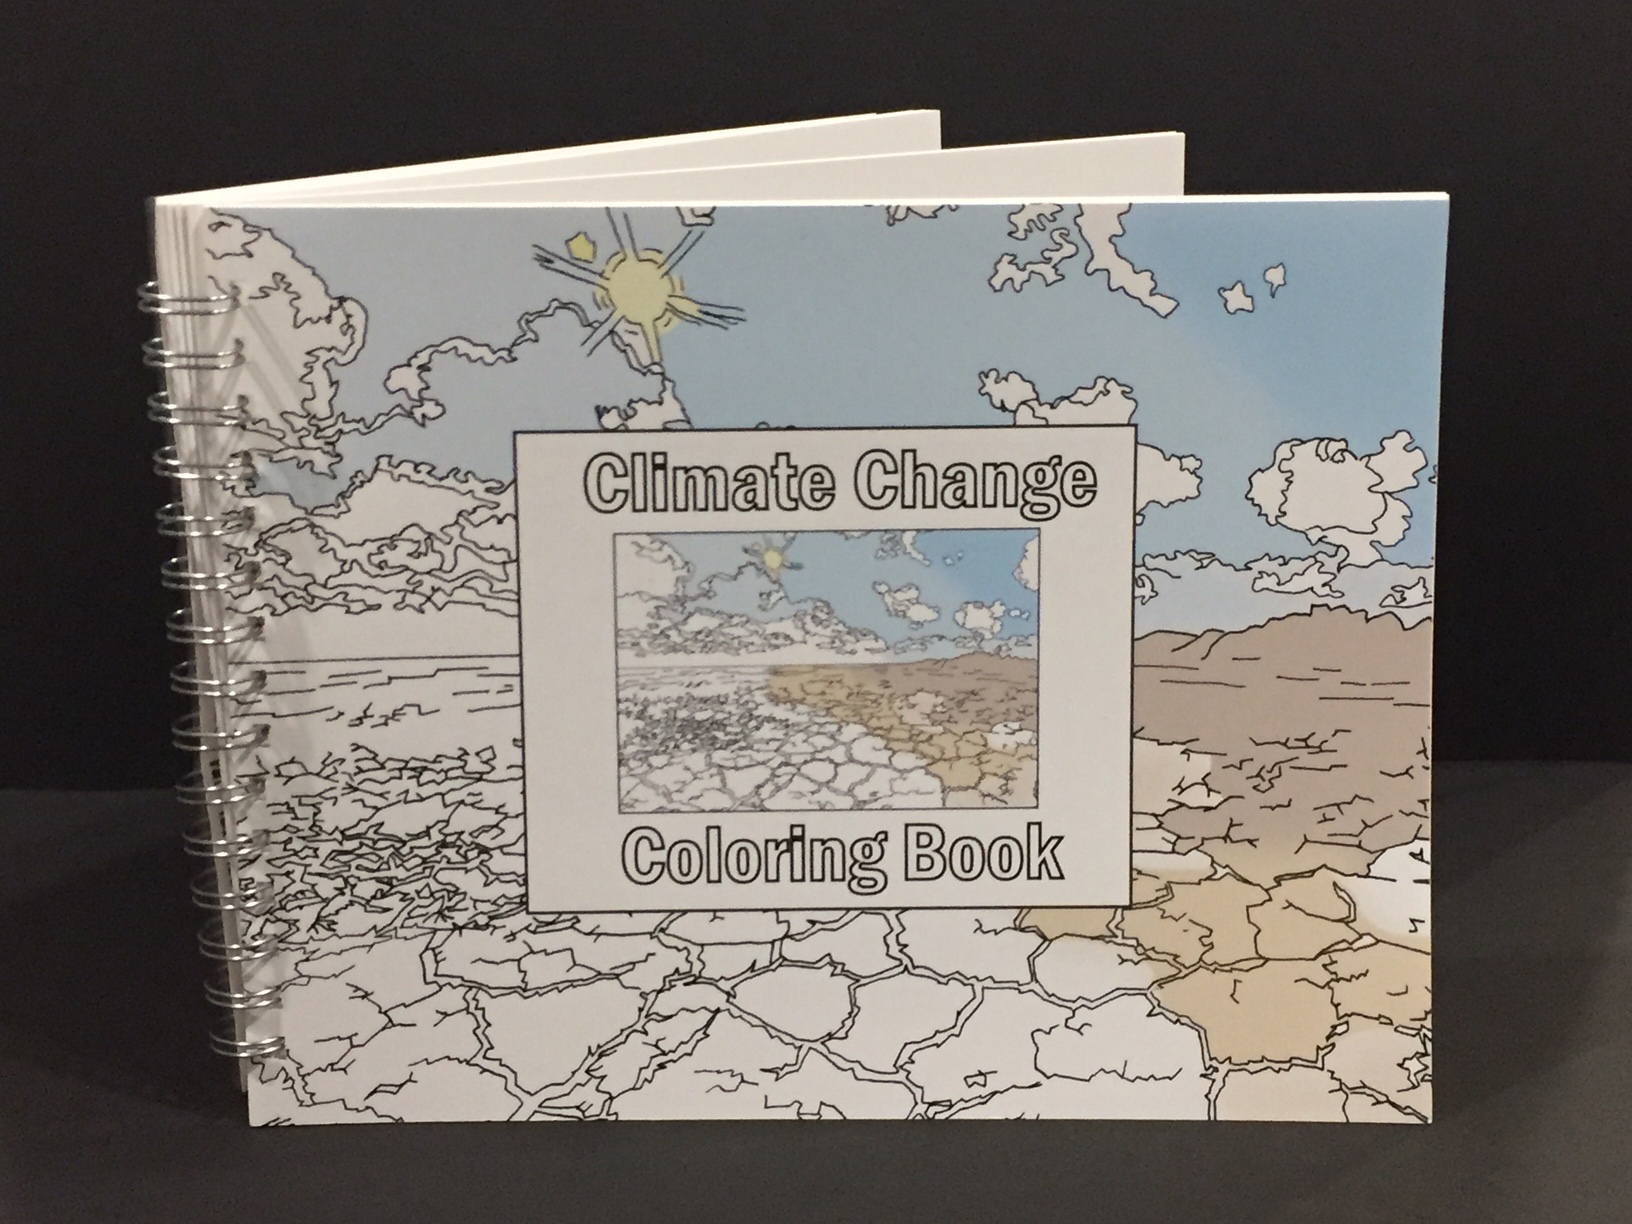 Ginger Burrell, Climate Change Coloring Book